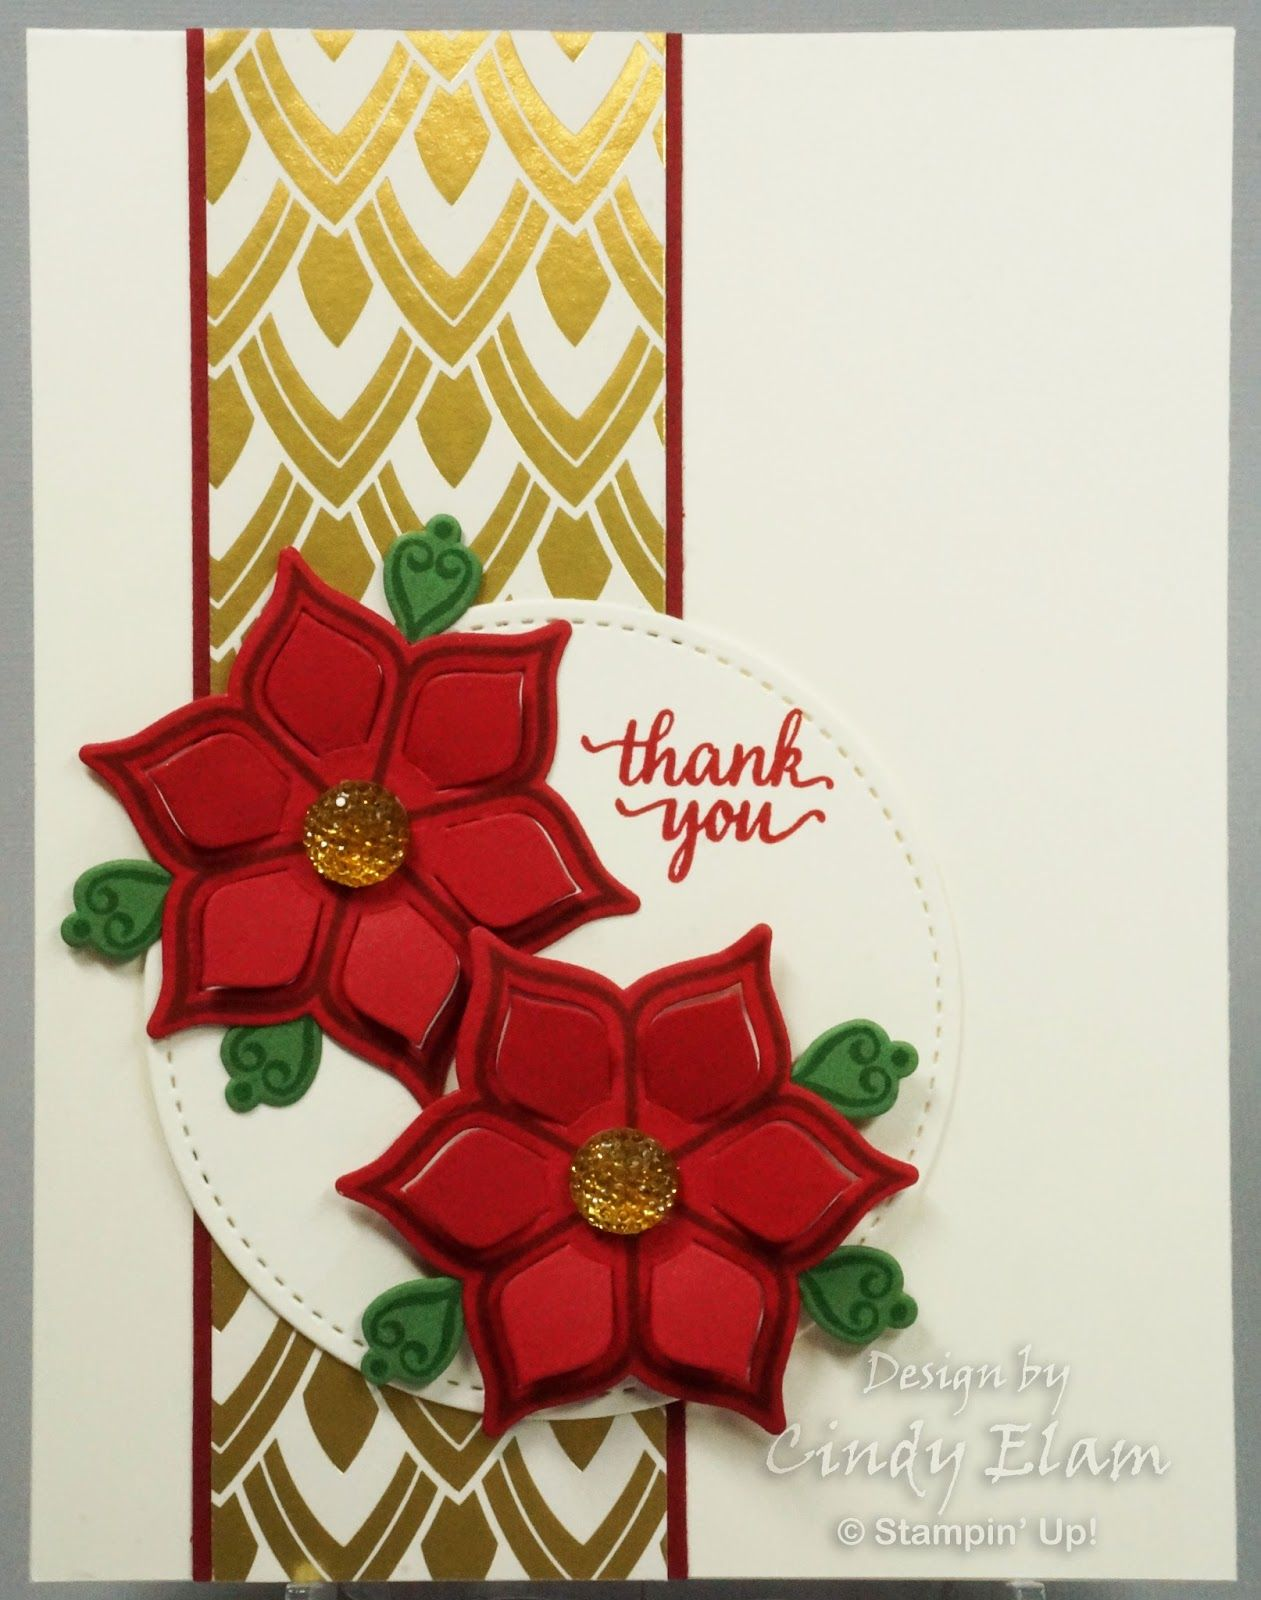 Stamp Review Crew - Eastern Beauty Review | Christmas cards, Xmas cards, Poinsettia cards